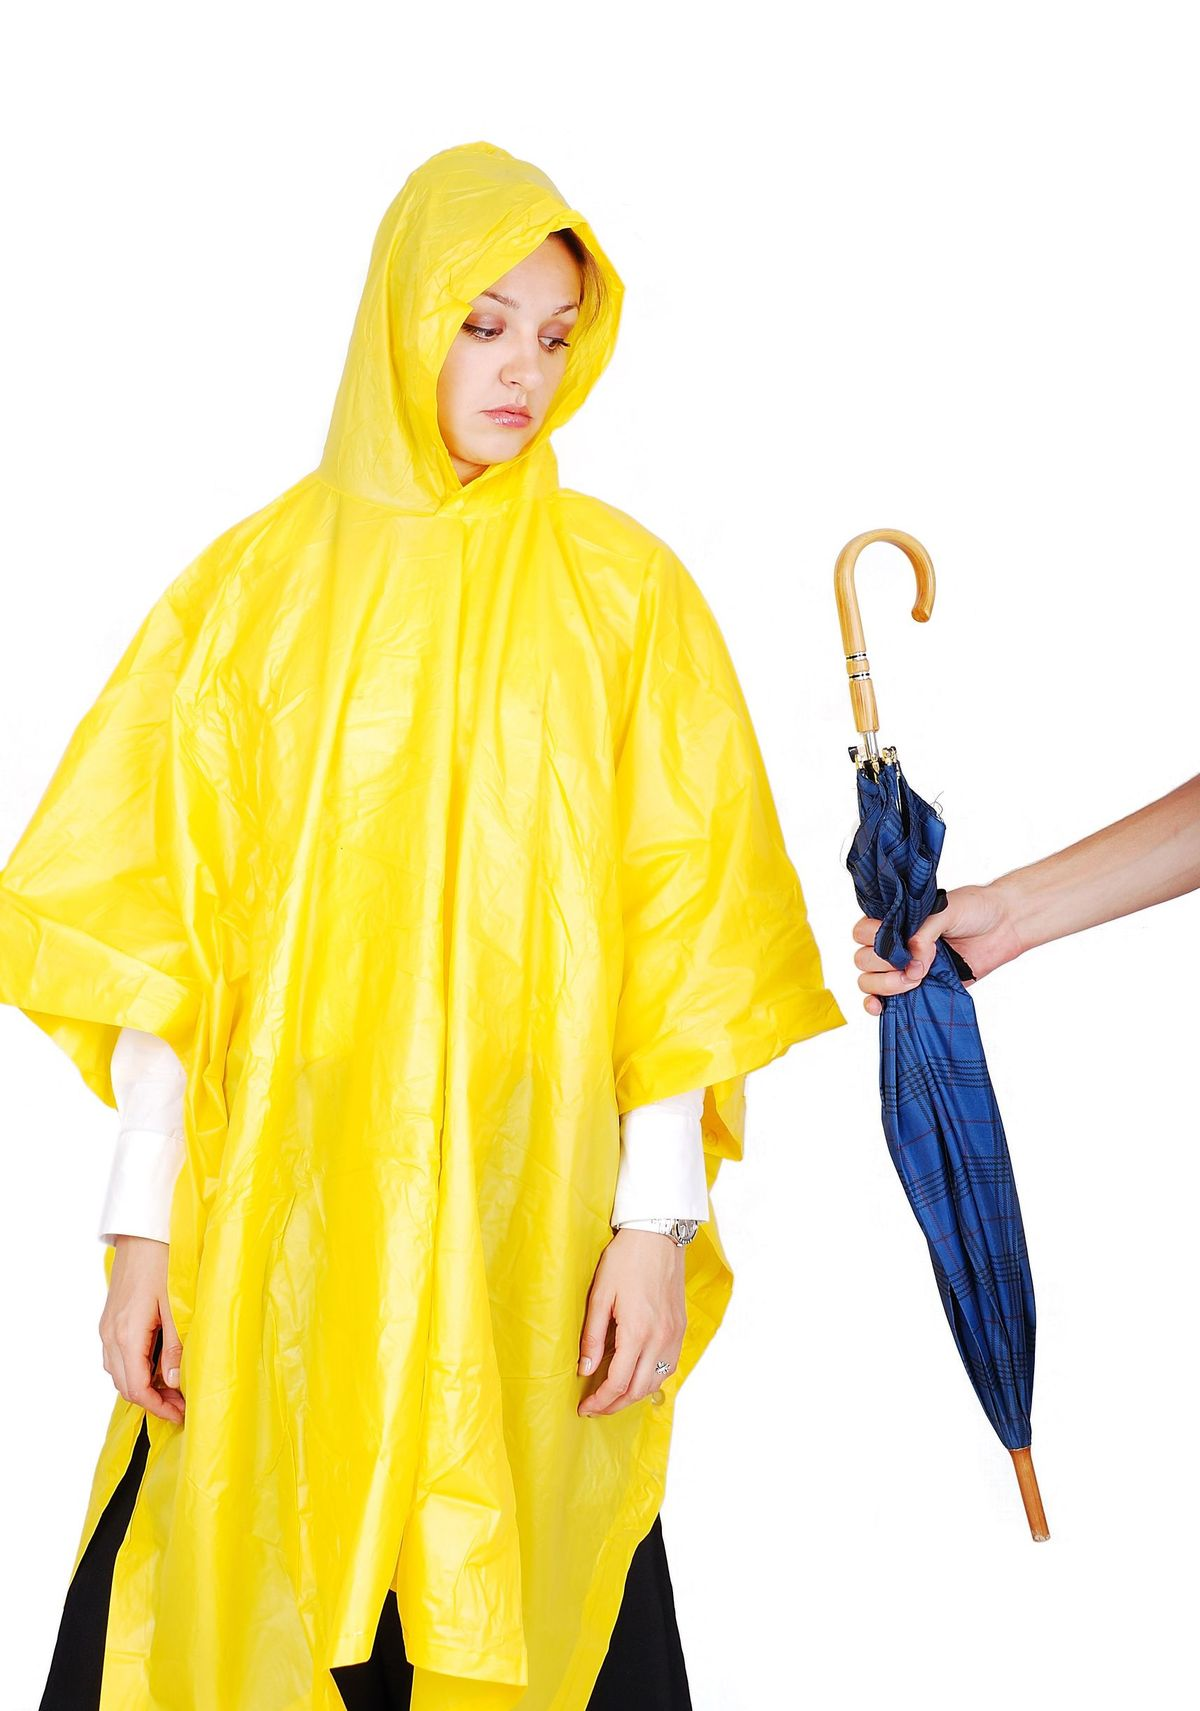 7 Thoughts Every U of A Sorority Girl Has When it Rains